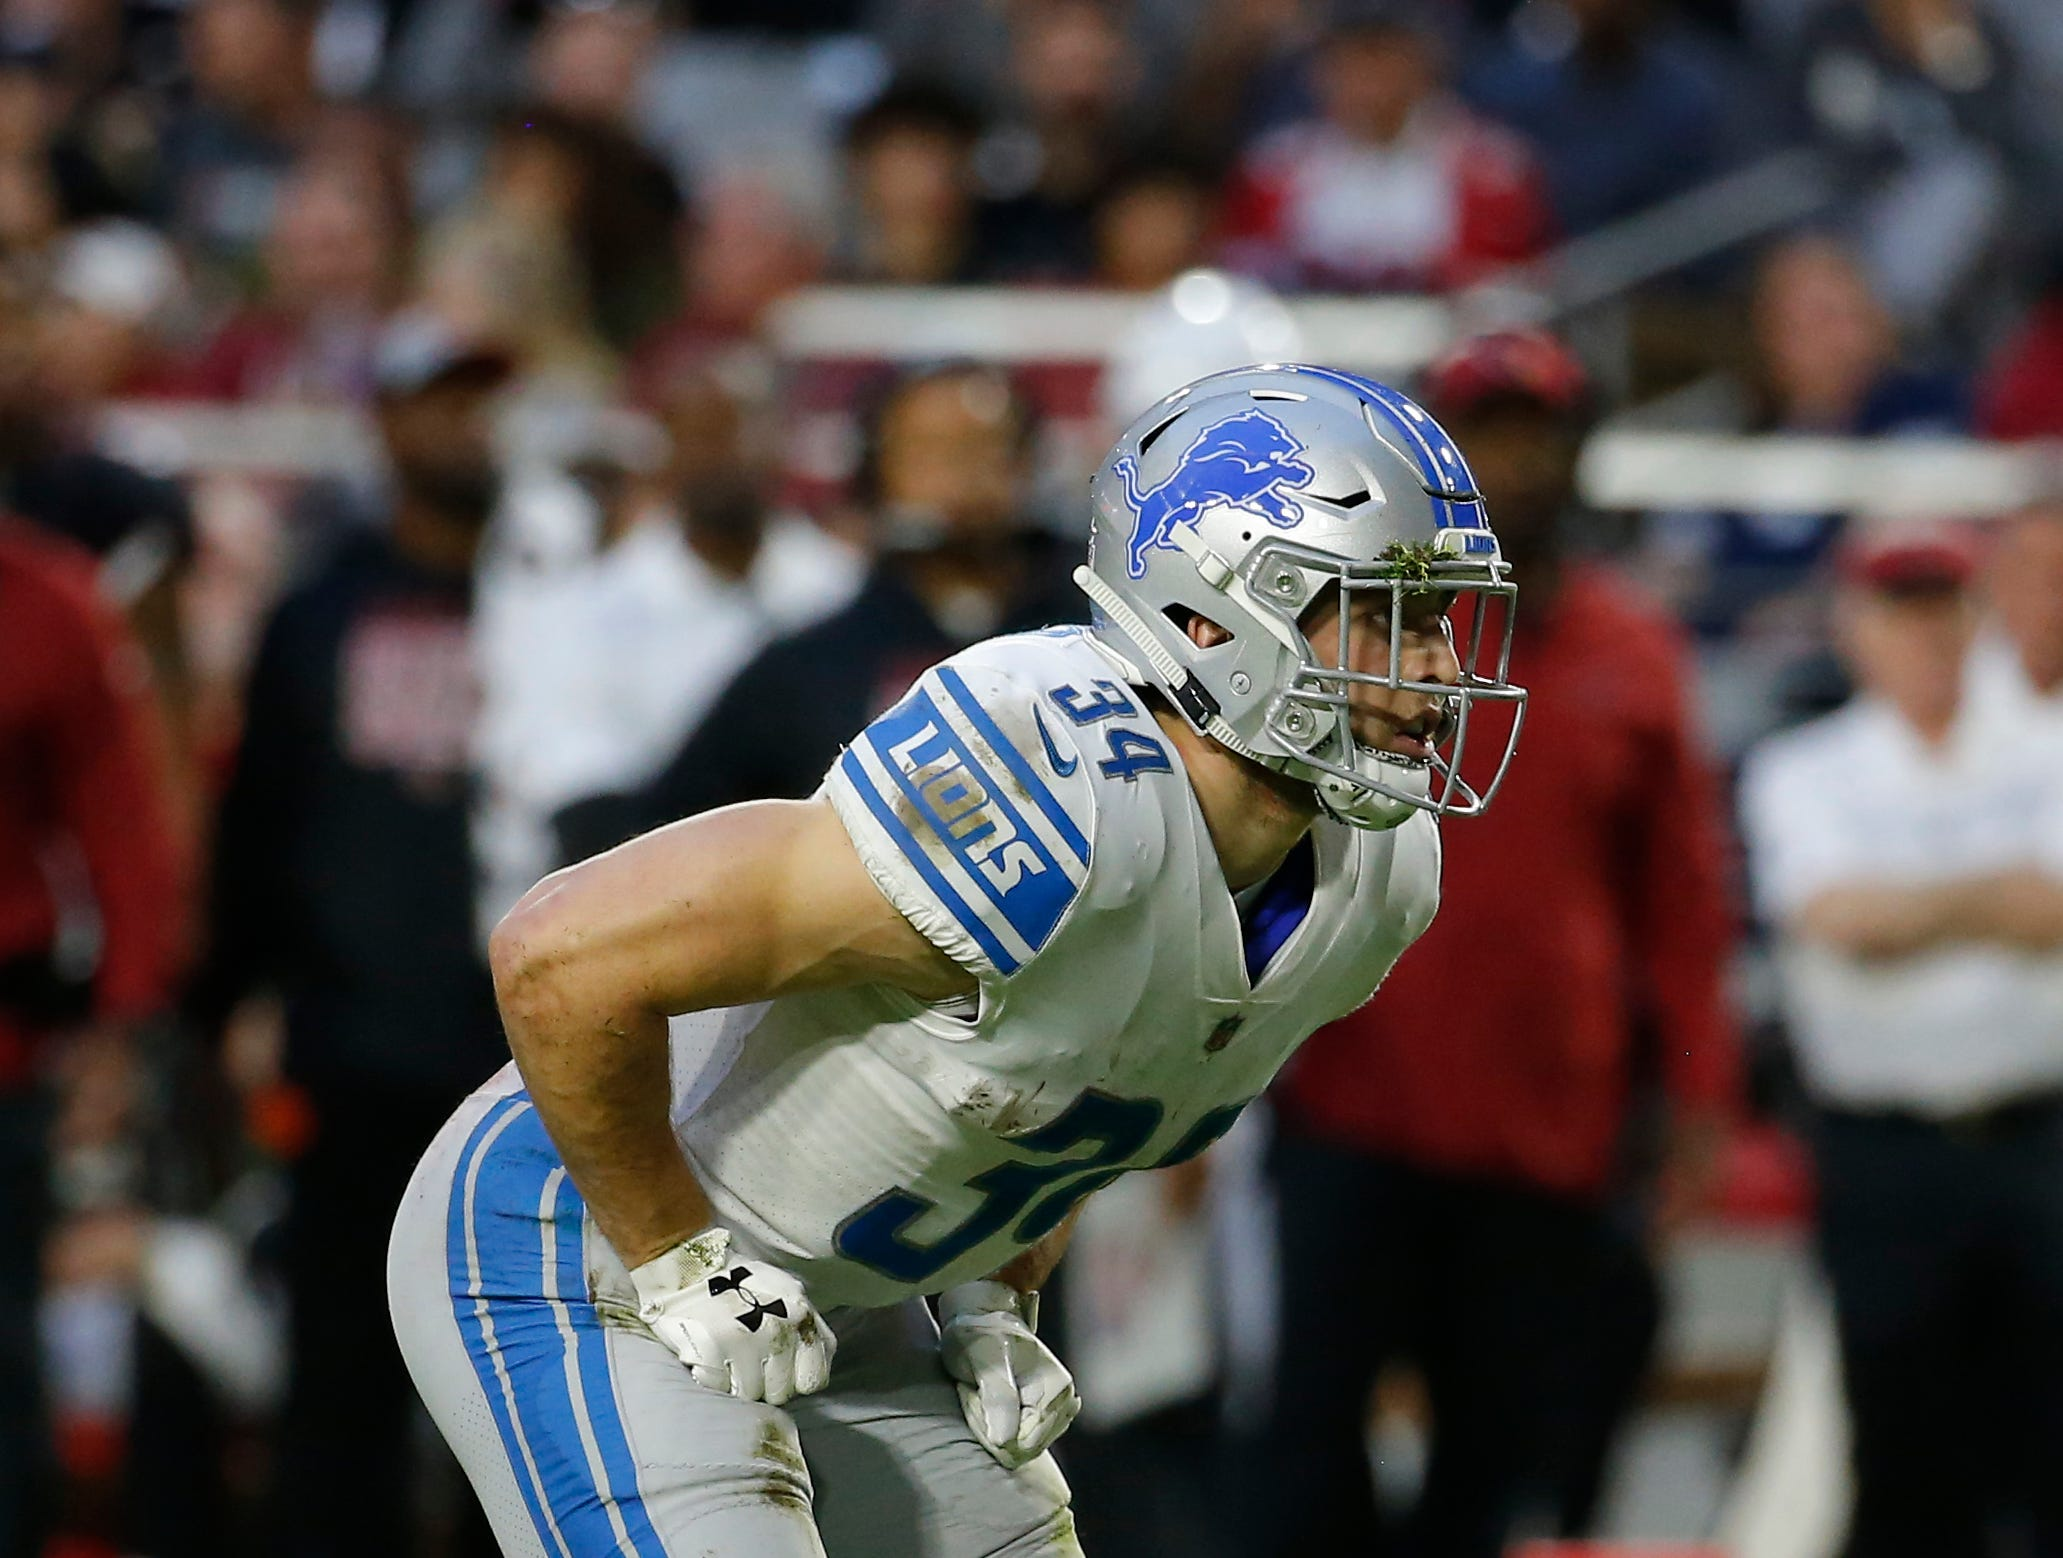 Detroit Lions running back Zach Zenner (34) during an NFL football game against the Arizona Cardinals, Sunday, Dec. 9, 2018, in Glendale, Ariz. The Lions won 17-3. (AP Photo/Rick Scuteri)